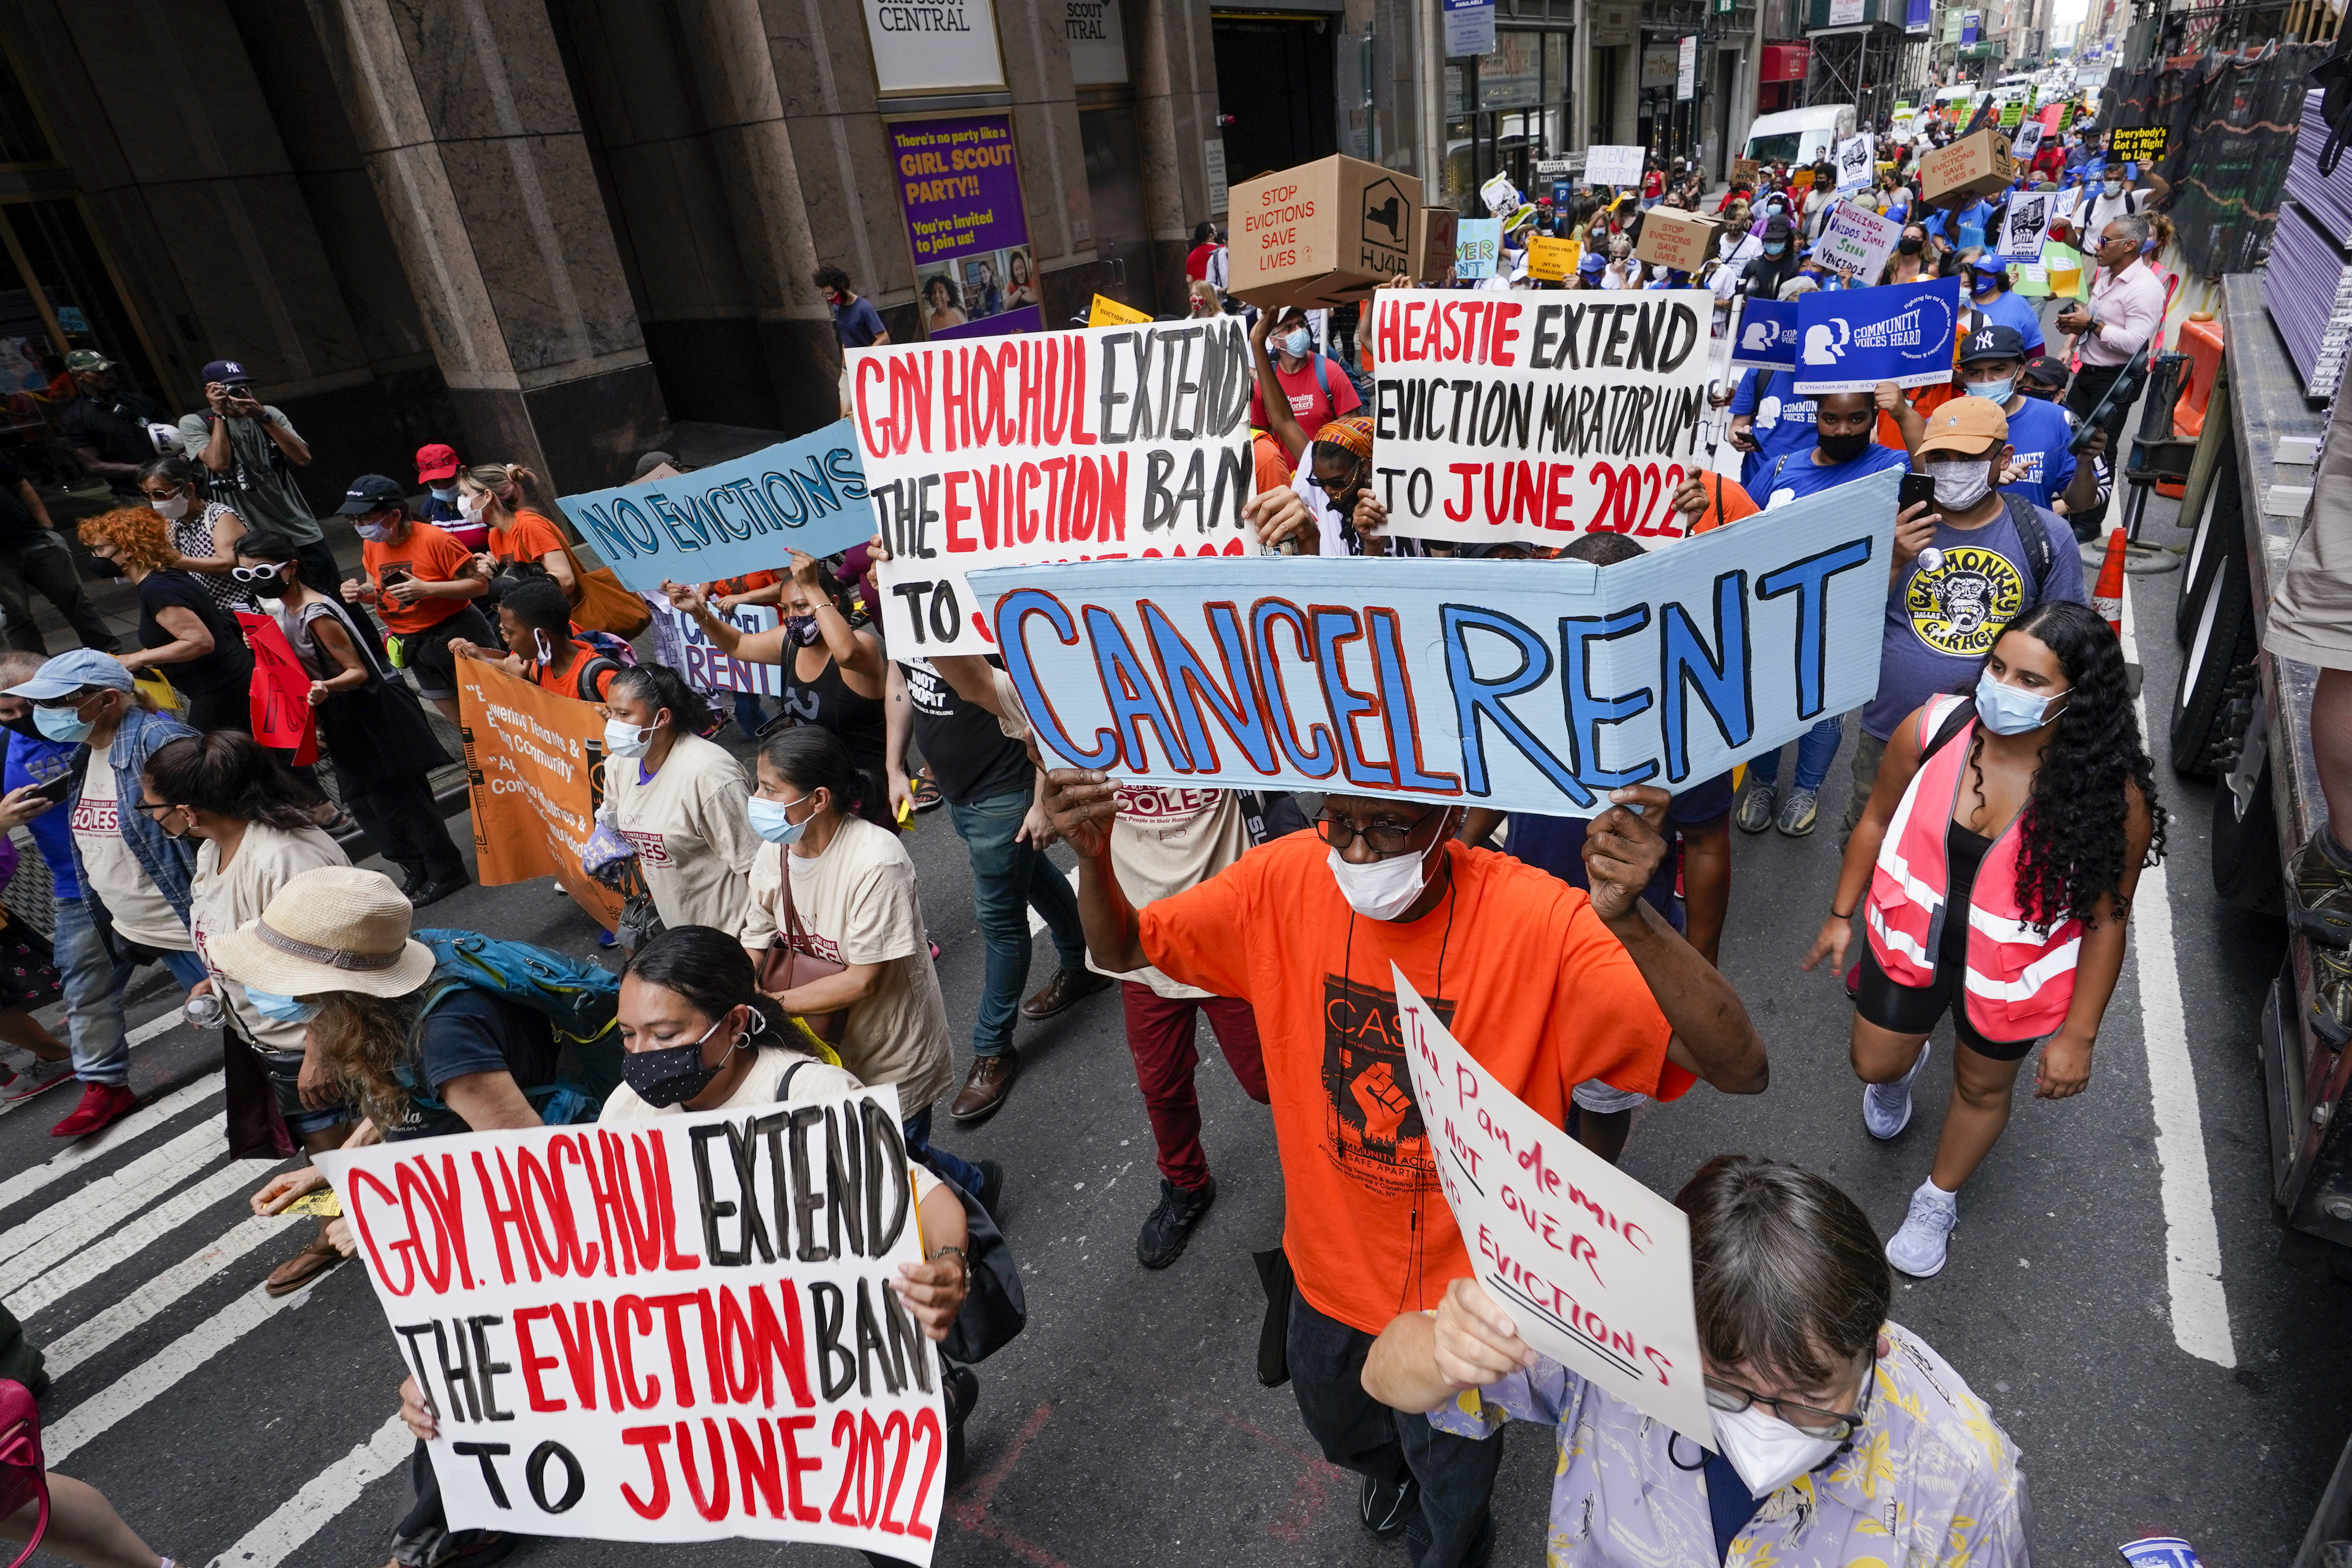 Activist march across town towards New York Gov. Kathy Hochul office, Aug. 31, 2021, in New York, during a demonstration to extend pandemic era eviction protections in wake of Supreme Court decision lifting the moratorium.